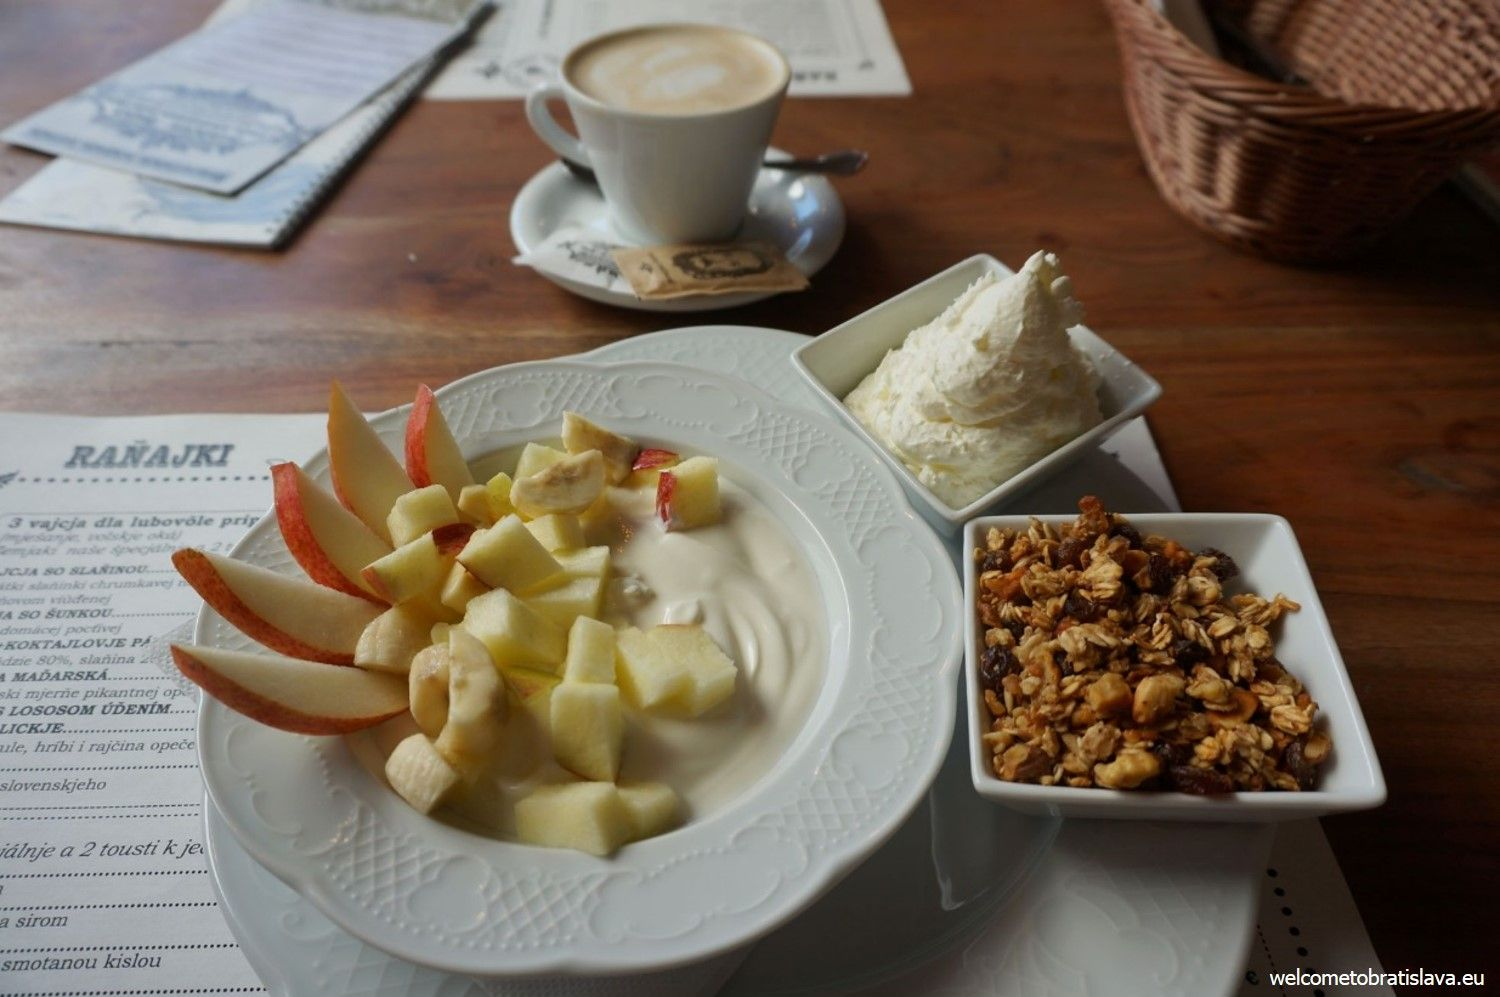 Home-made granola with yogurt and fruit